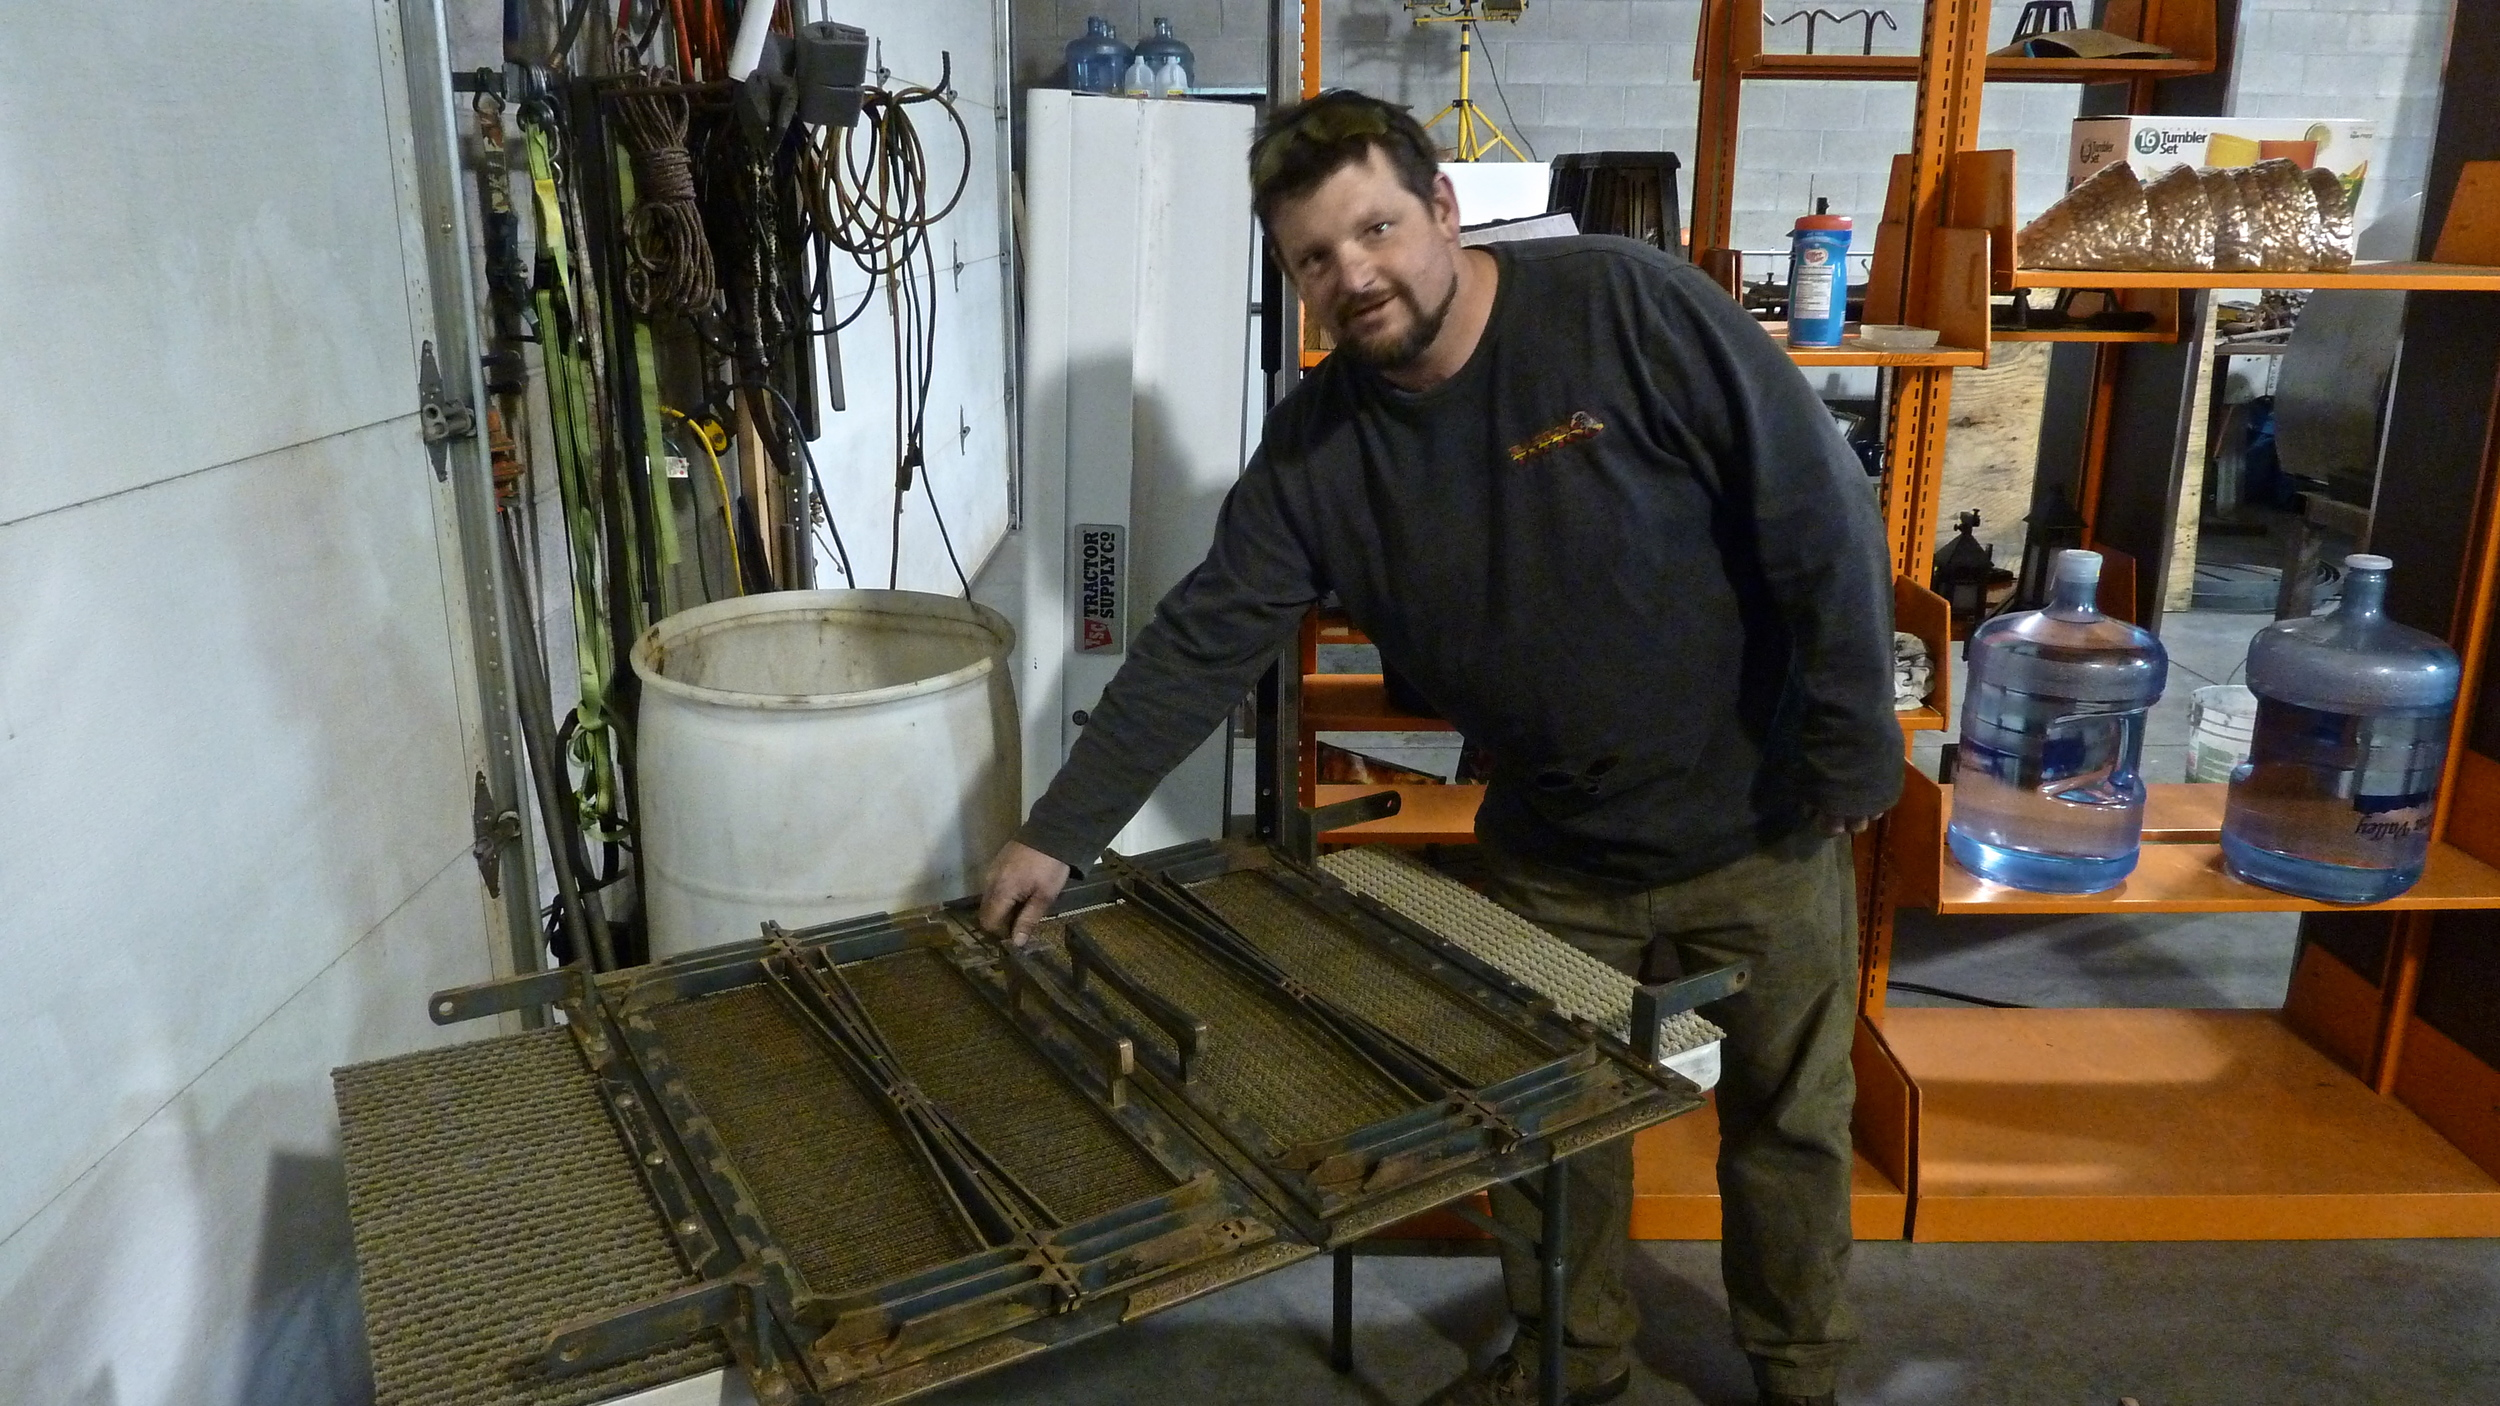 Andy showing a fireplace screen he is manufacturing for a client